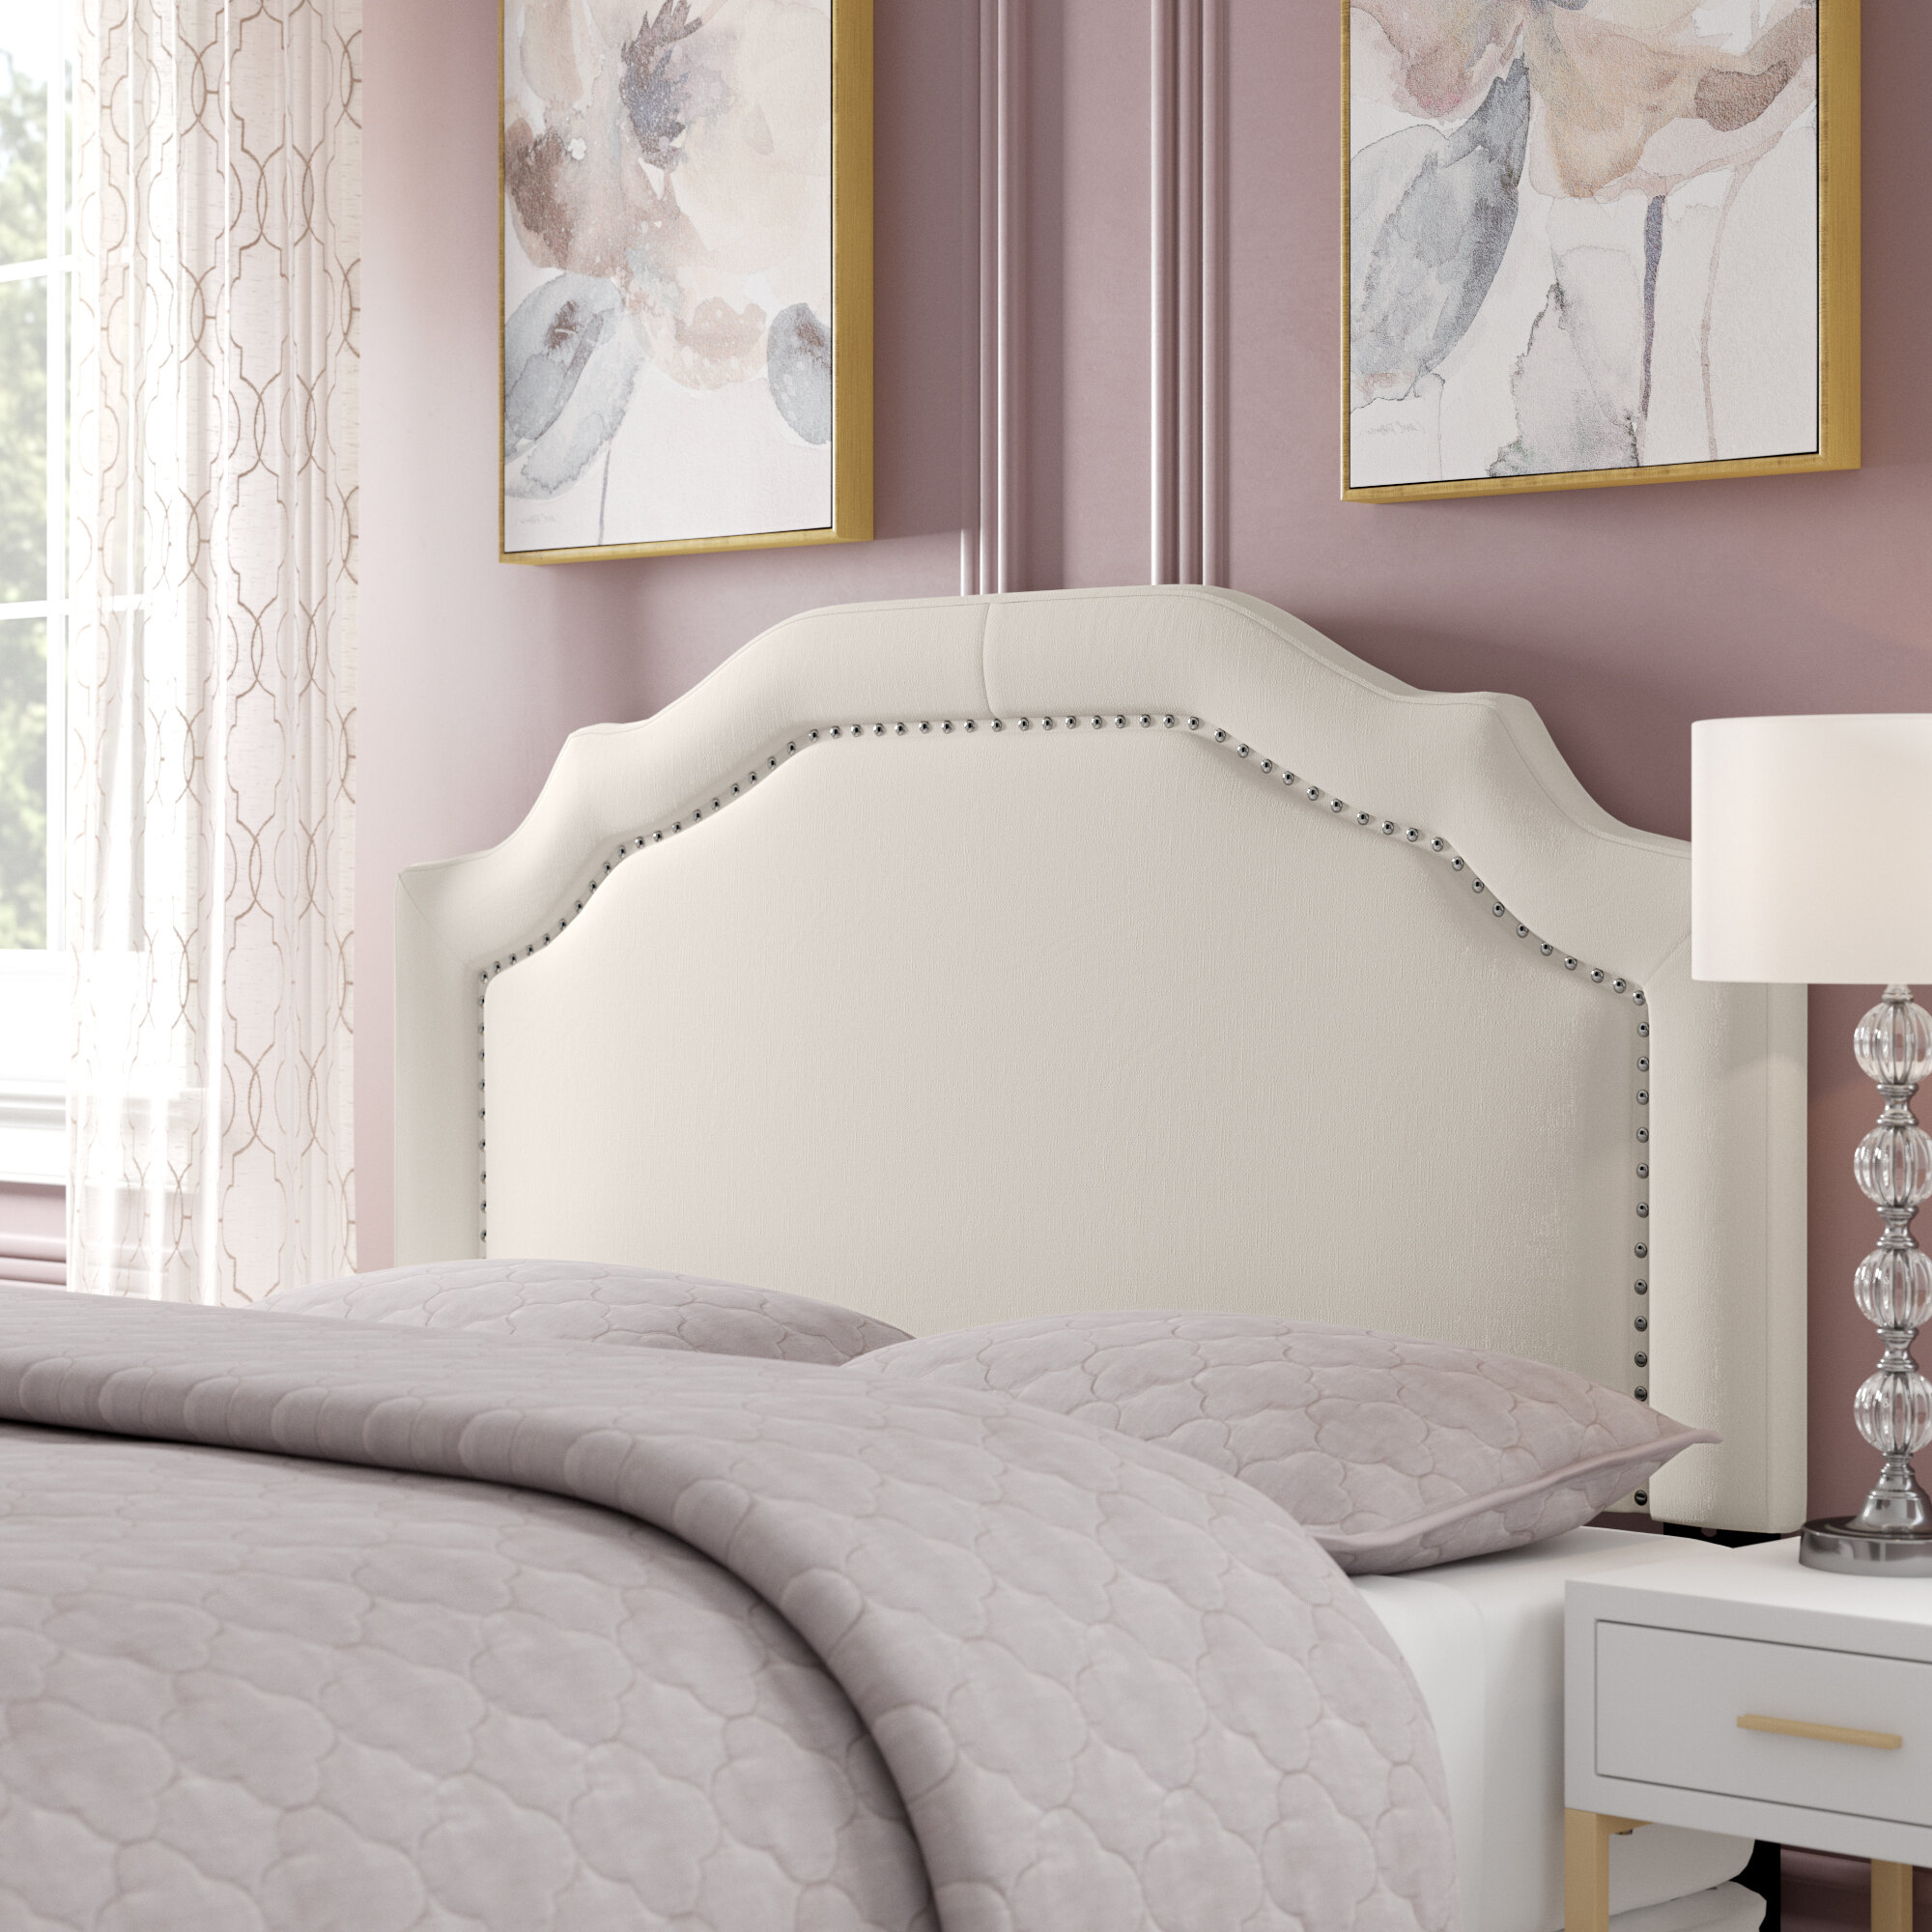 Willa arlo interiors aulay full queen upholstered panel headboard reviews wayfair